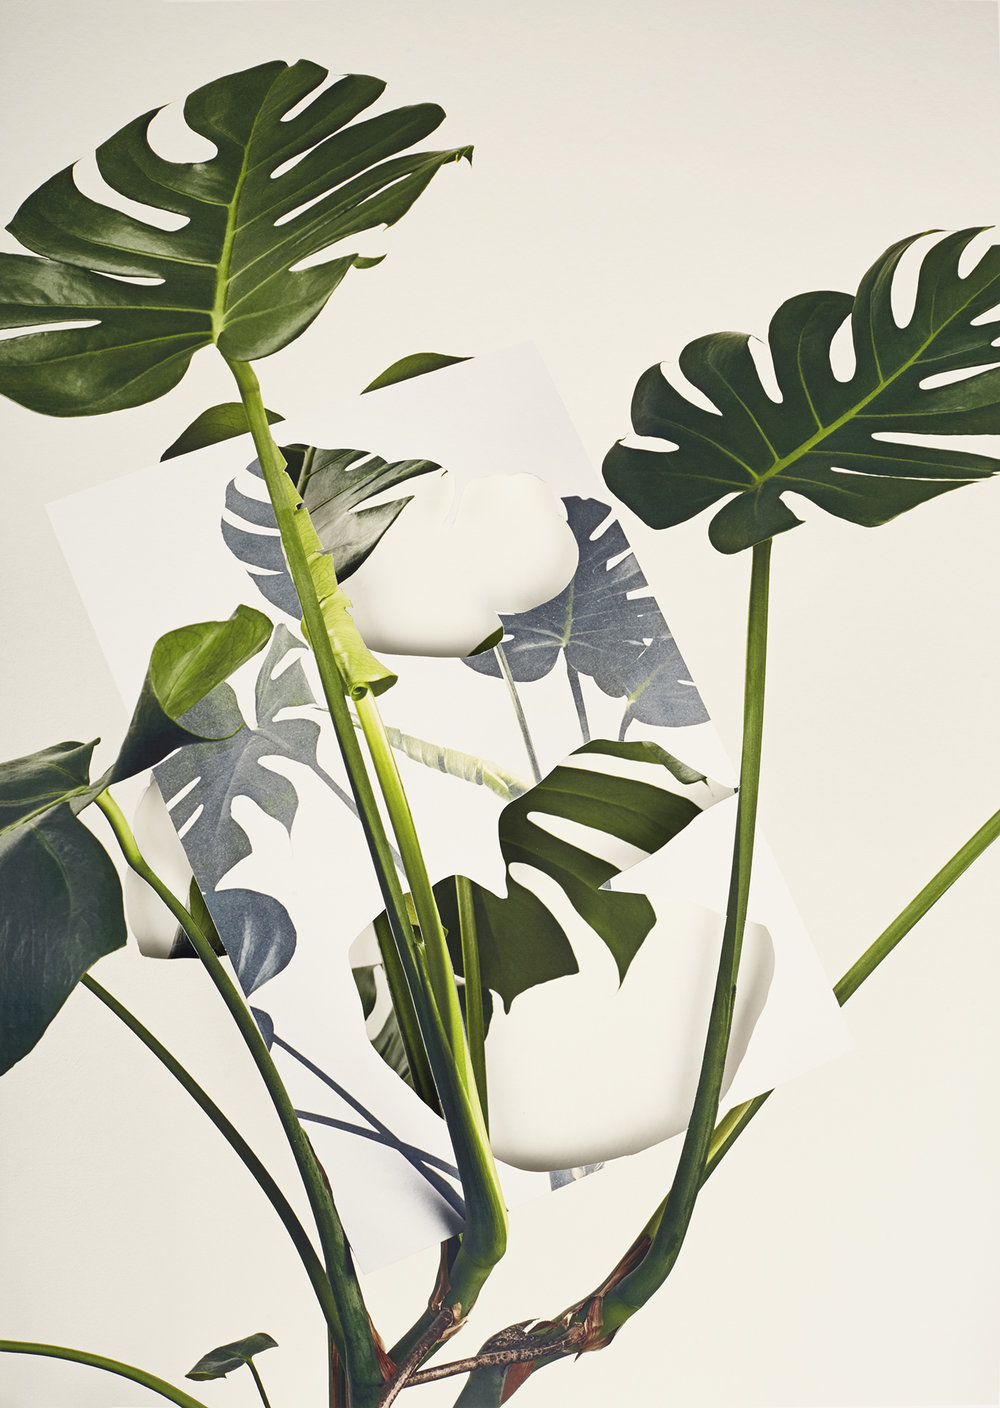 Alma Haser,  Monstera Deliciosa , 2018  Layered and cut digital pigment prints (2 layers), 47 x 35 cm total (approx. 18.5 x 13.75 in), edition of 7   Inquire